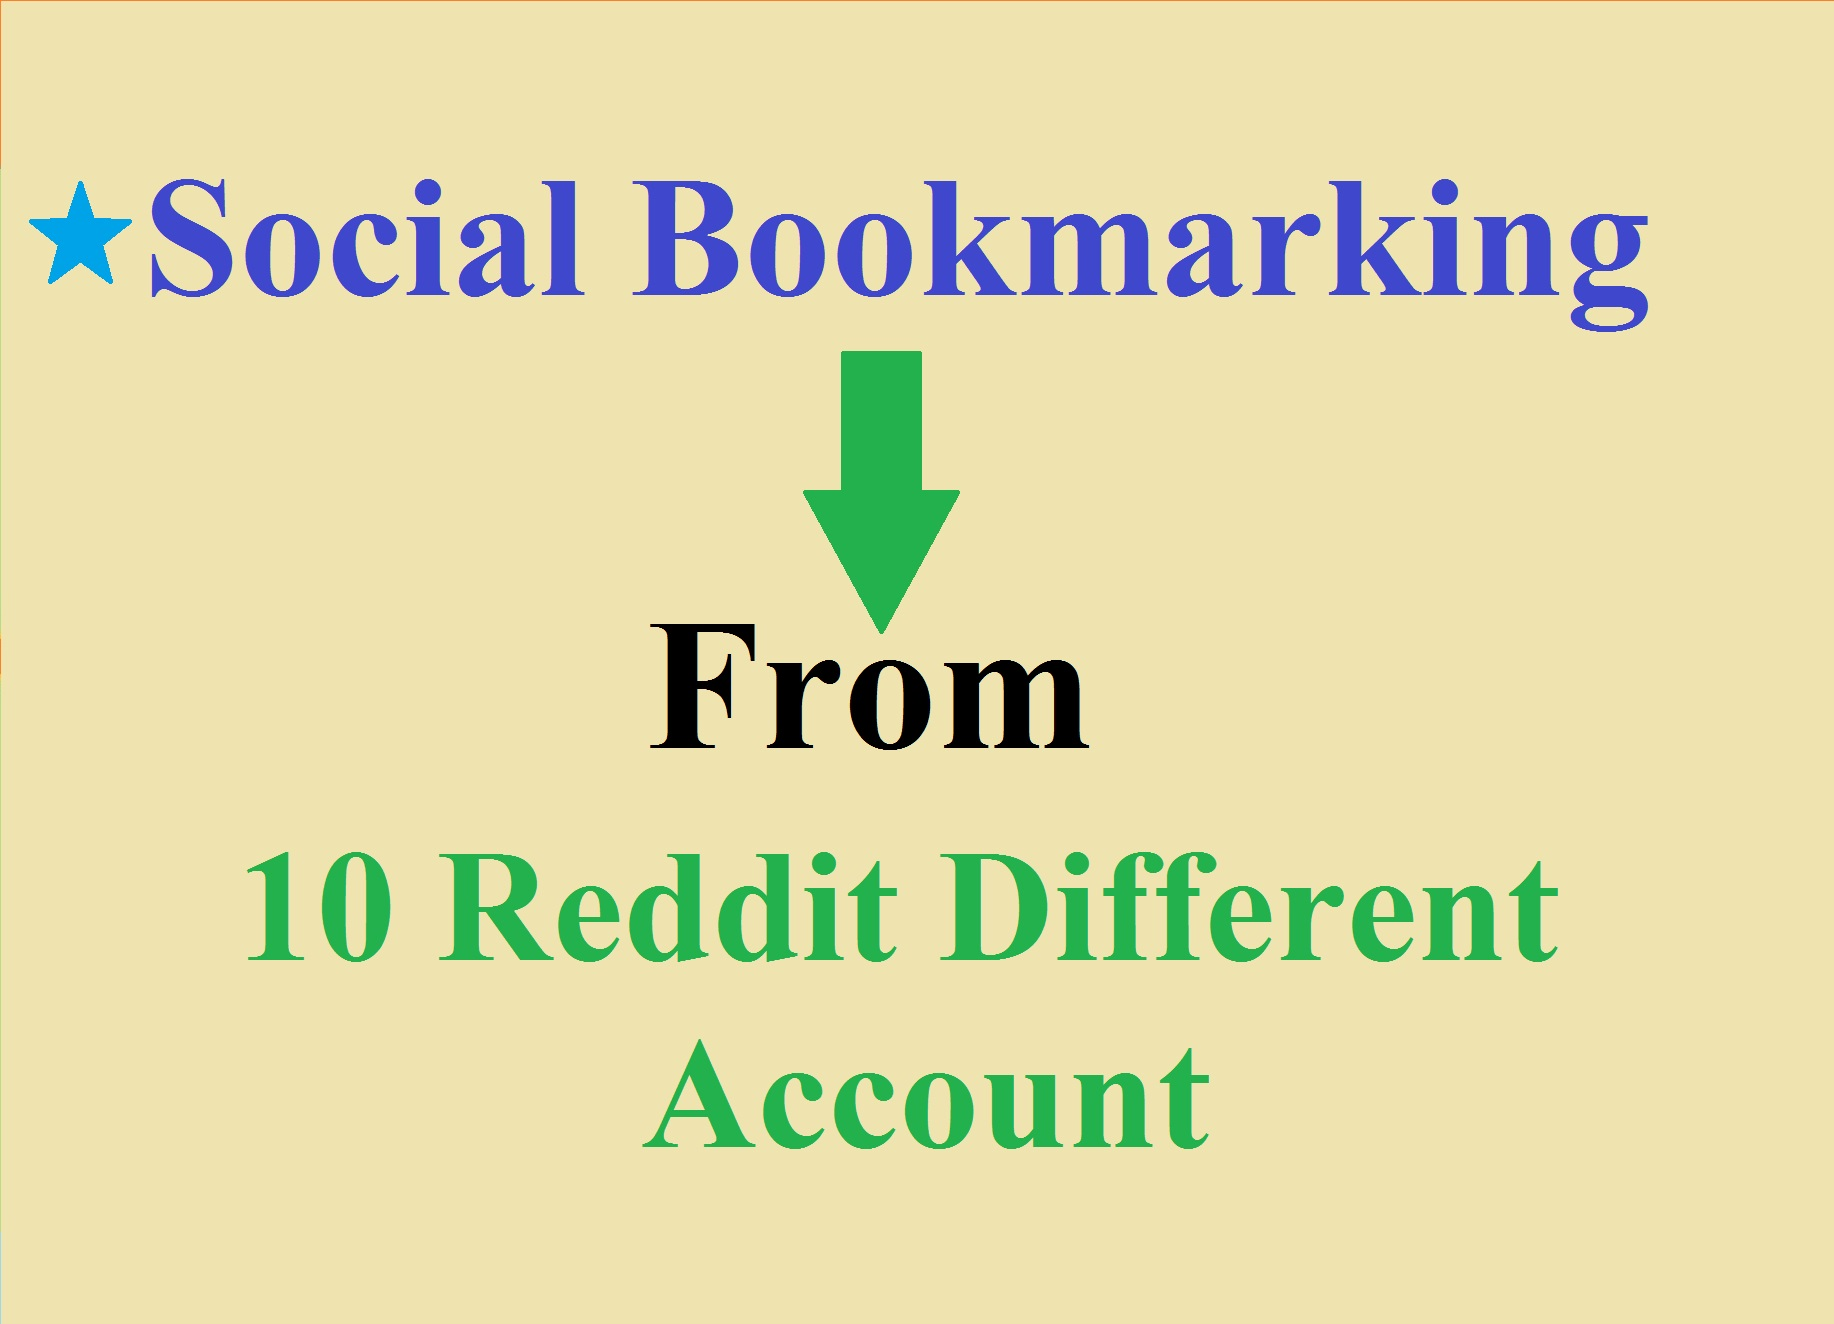 Manually Provide 10 Social Bookmarking From Redit